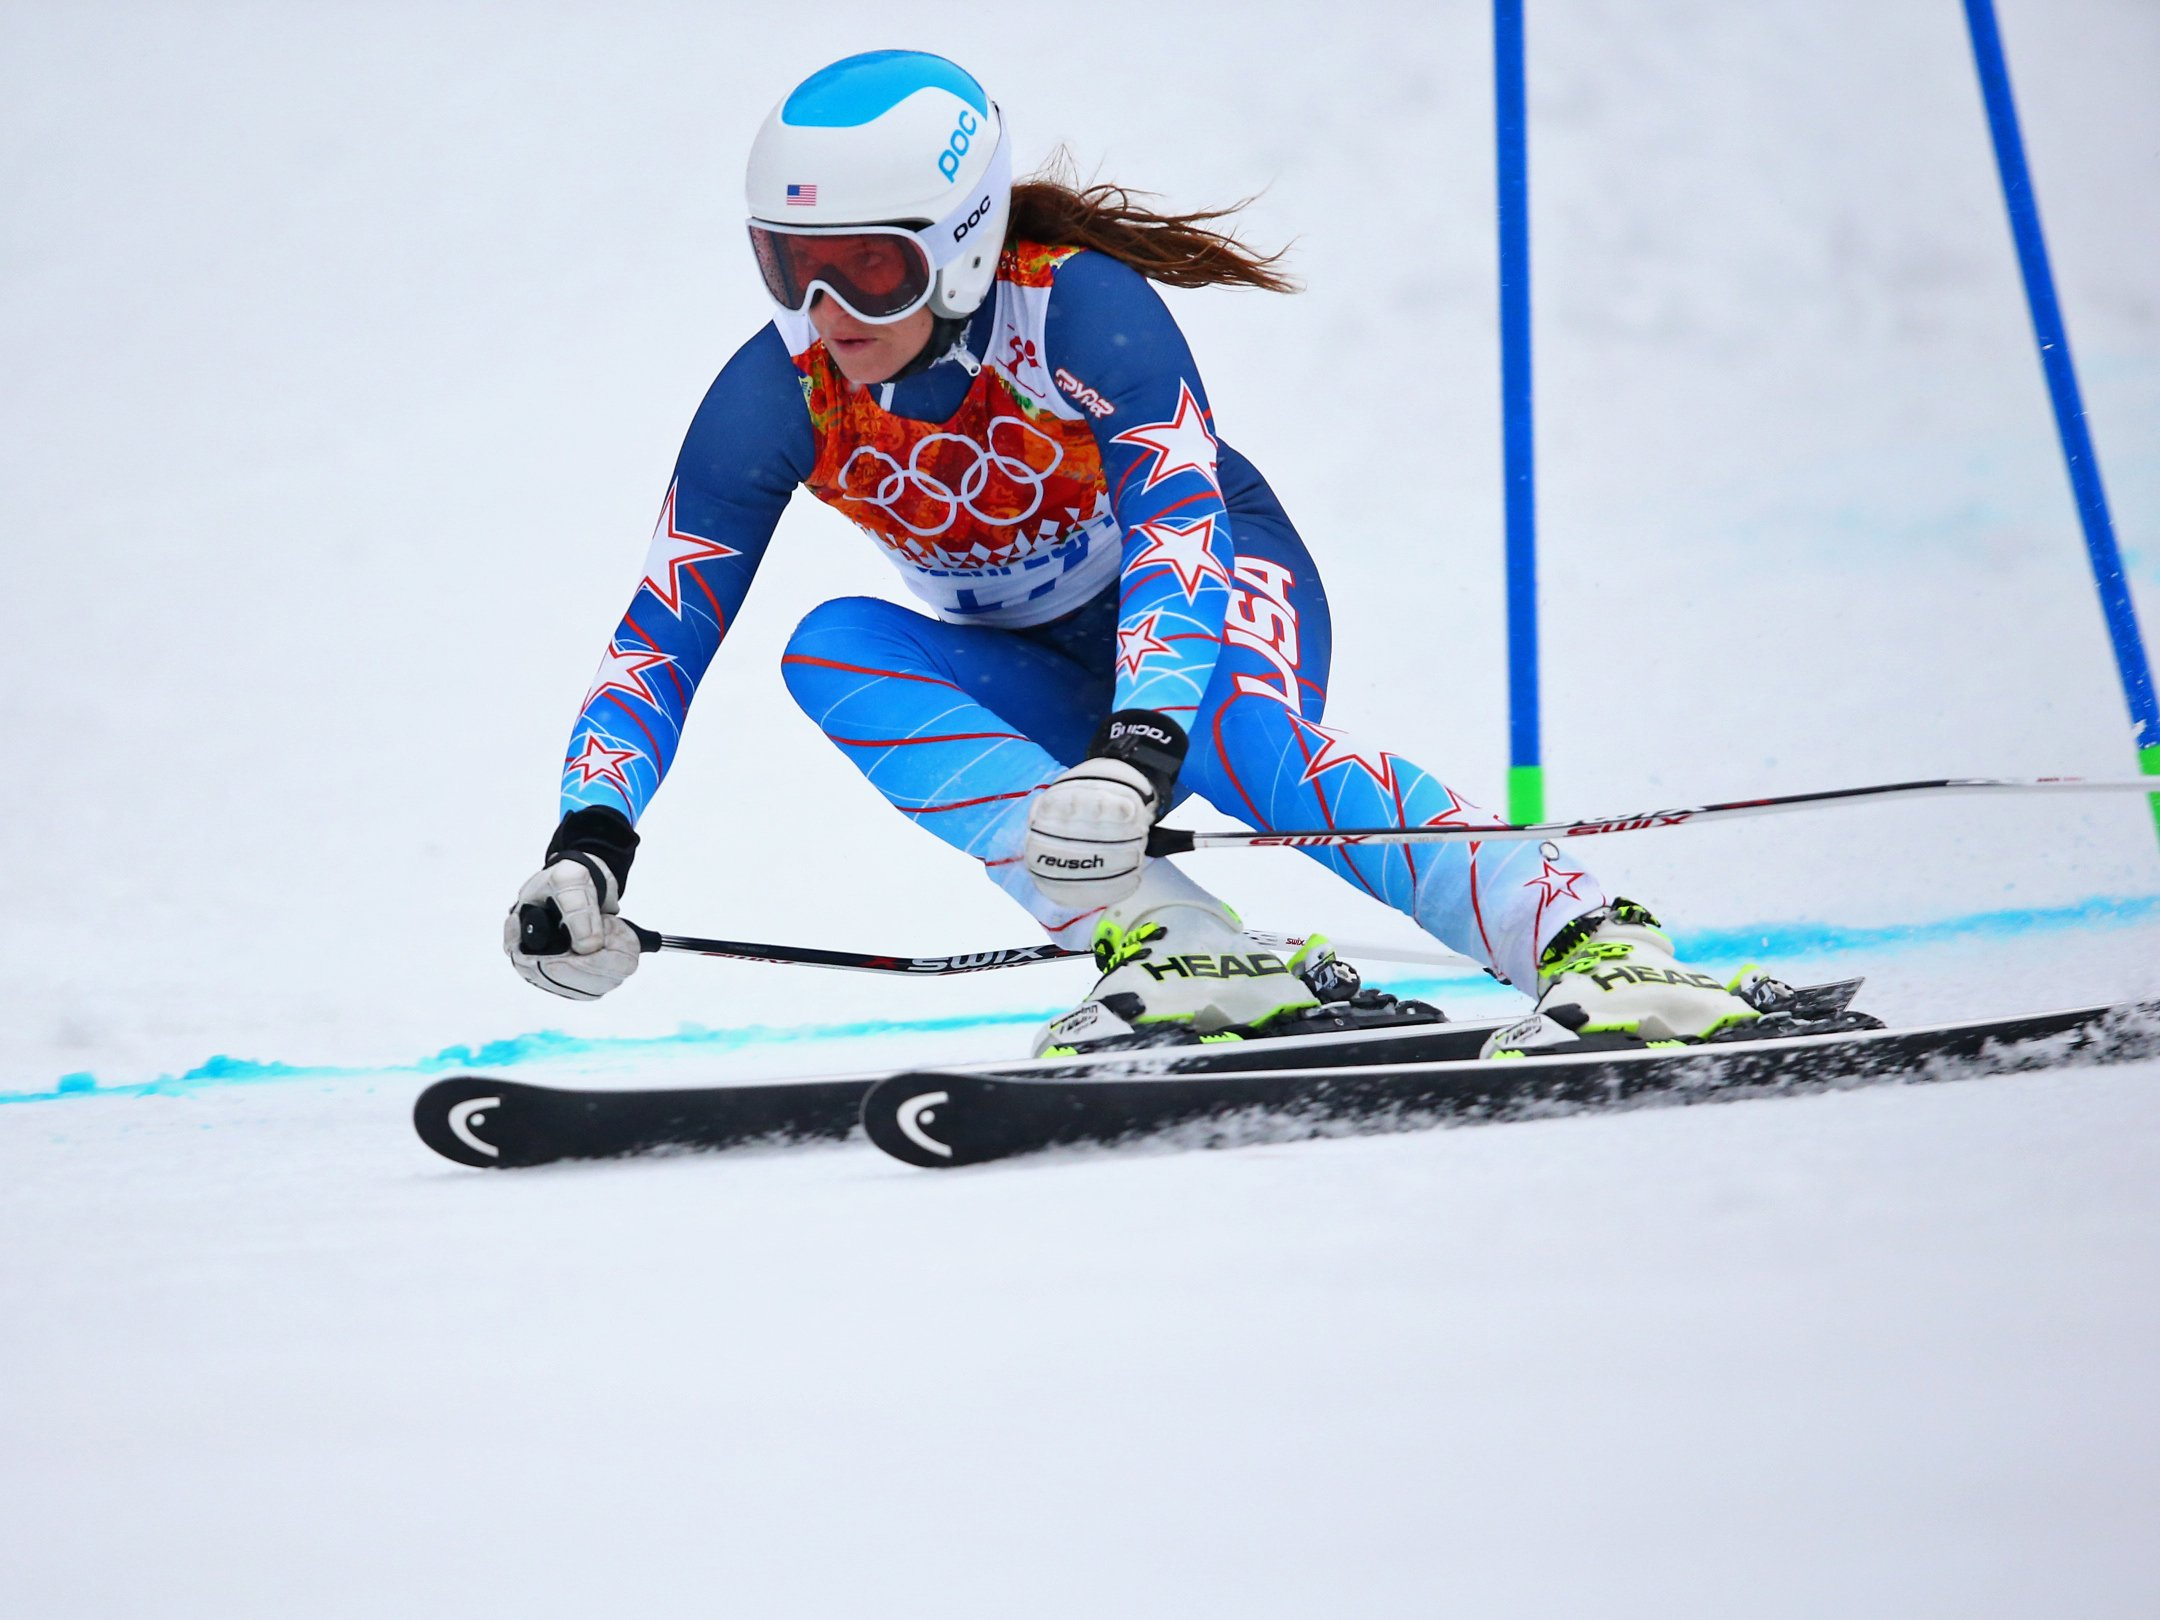 Mancuso missed a gate during the women's giant slalom competition and failed to finish her run.